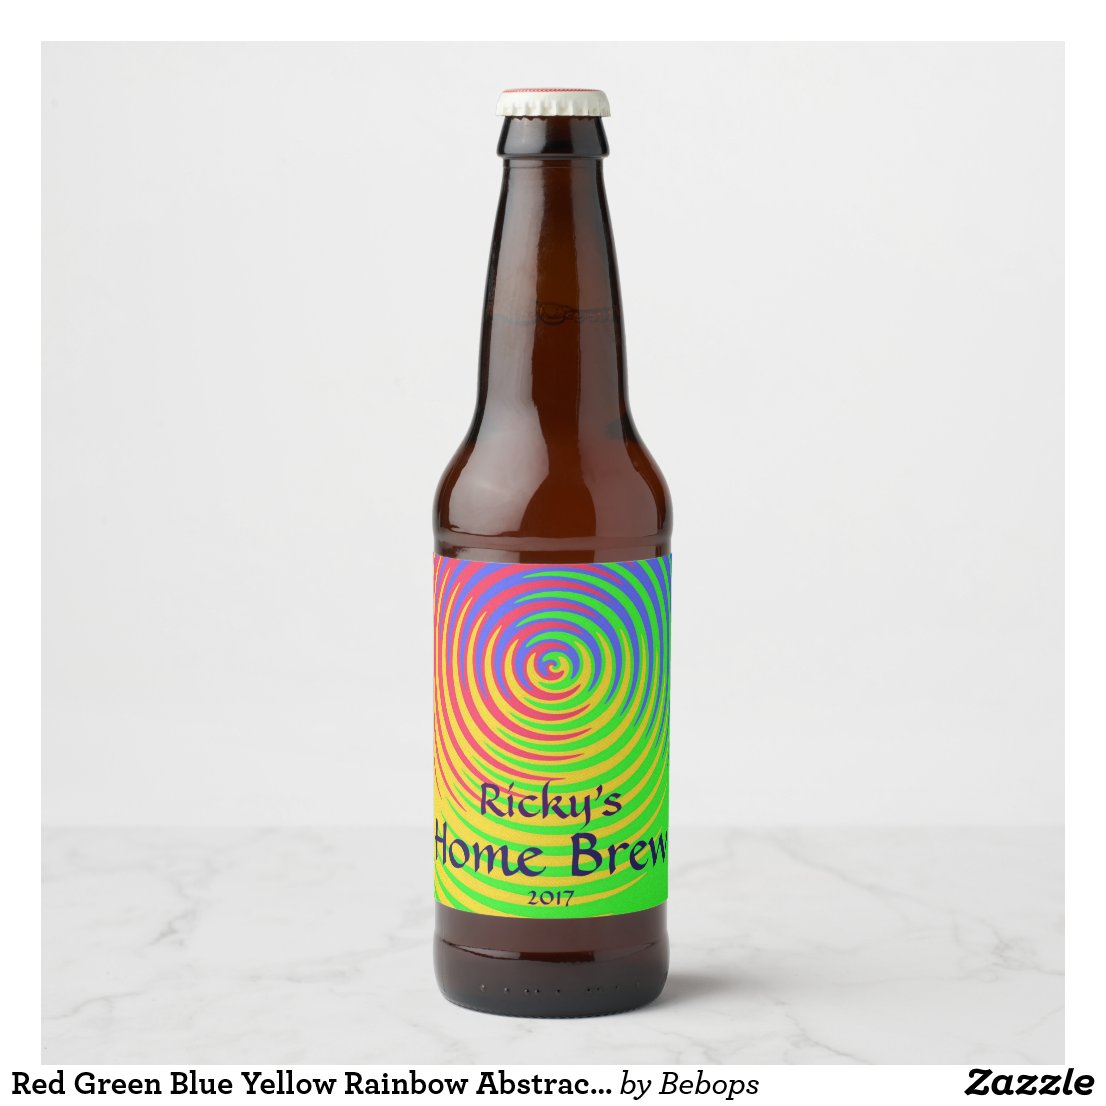 Red Green Blue Yellow Rainbow Abstract Beer Label